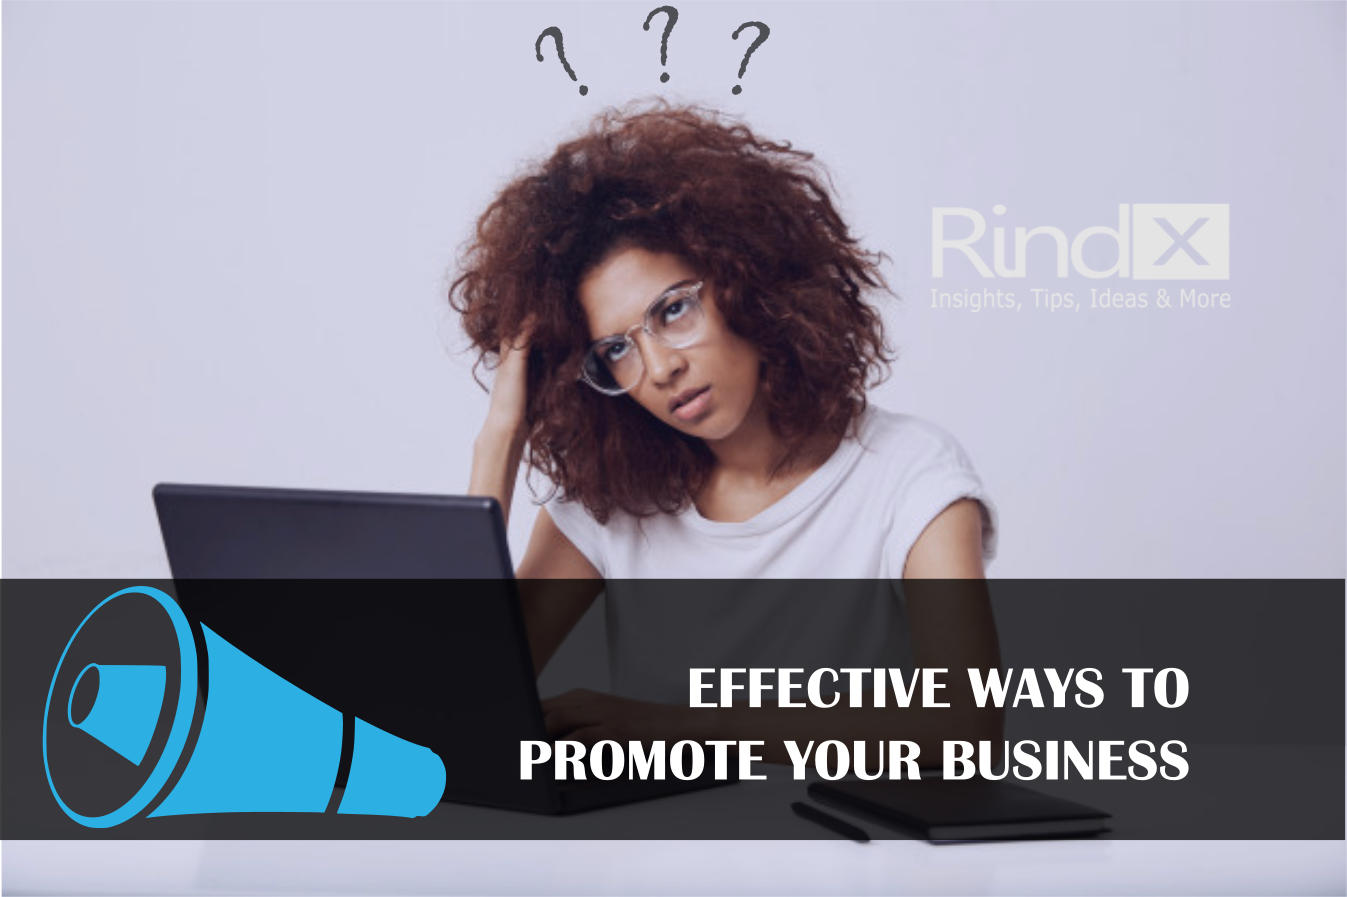 15 HIGHLY EFFECTIVE WAYS TO PROMOTE YOUR BUSINESS